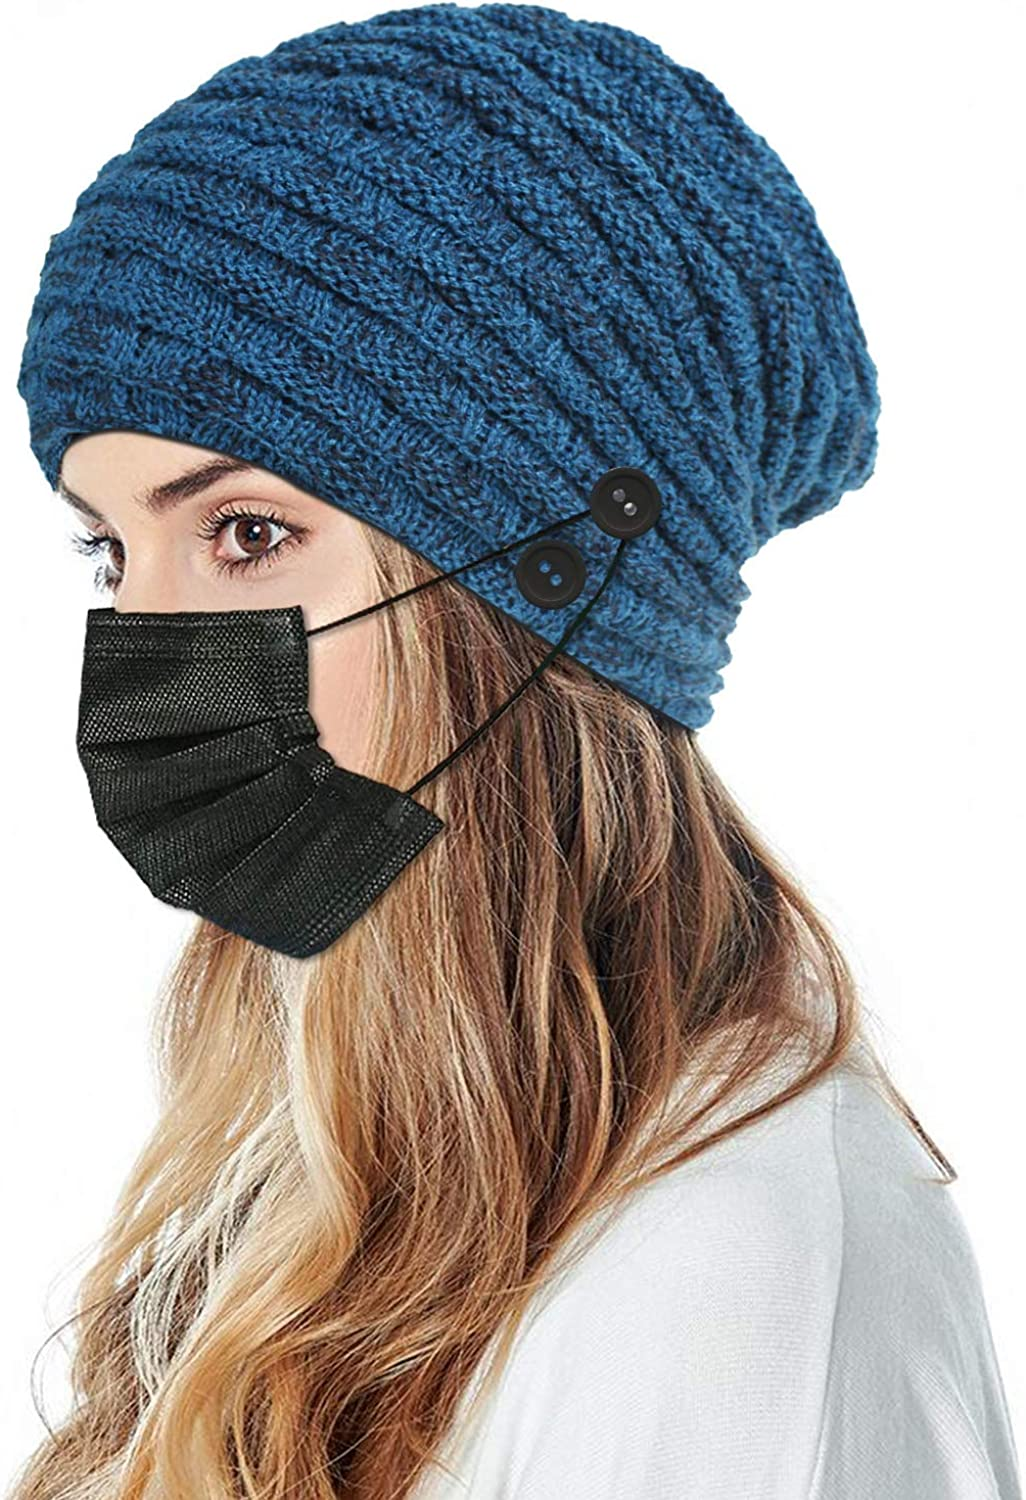 LUCKYBUNNY Women Men Fleece Beanie with 4 Buttons to Hold Face Cover, Winter Warm Knit Hat Skull Cap for Ear Protection